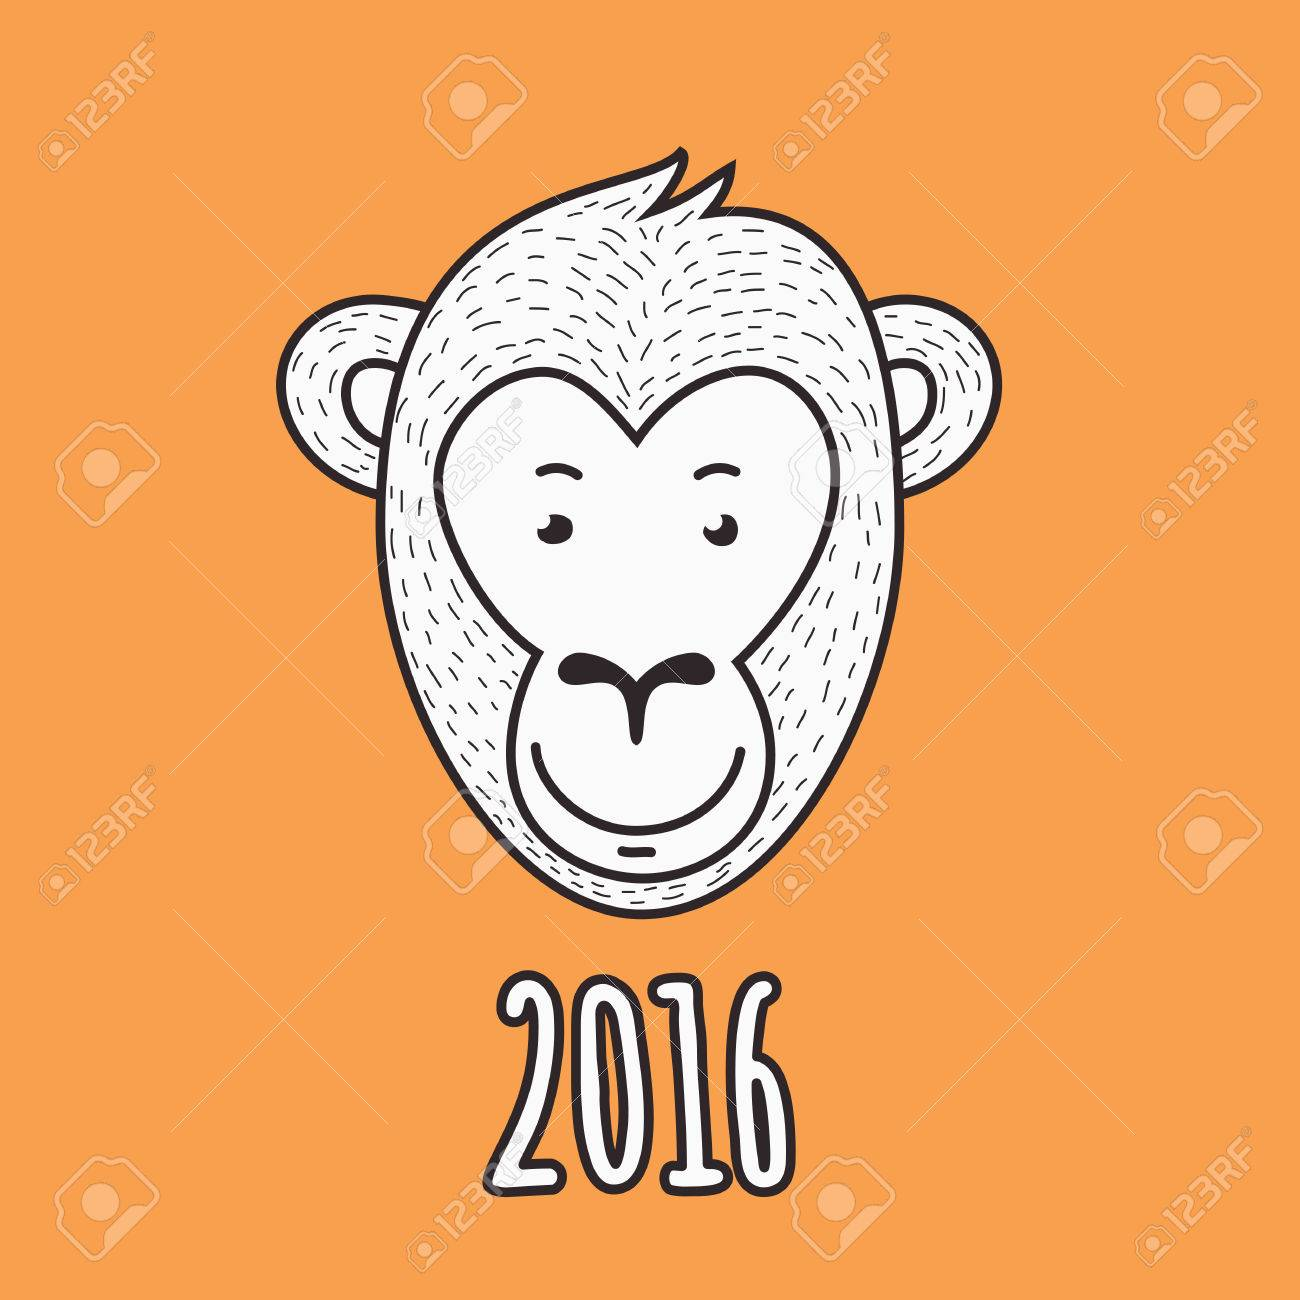 vector hand drawn smiling monkey face 2016 happy new year